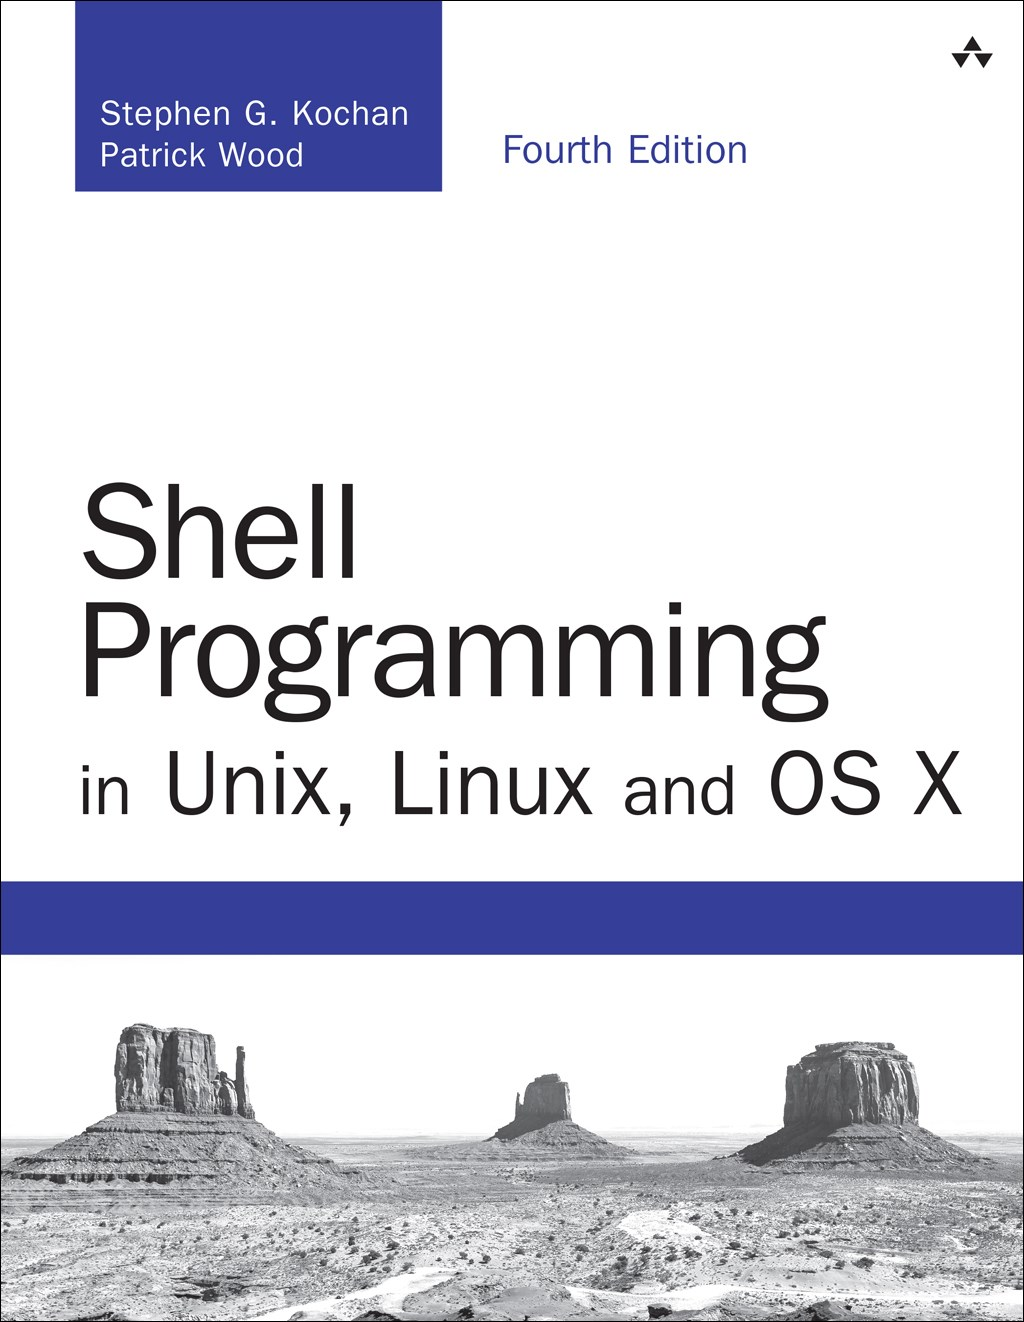 Shell Programming in Unix, Linux and OS X: The Fourth Edition of Unix Shell Programming, 4th Edition